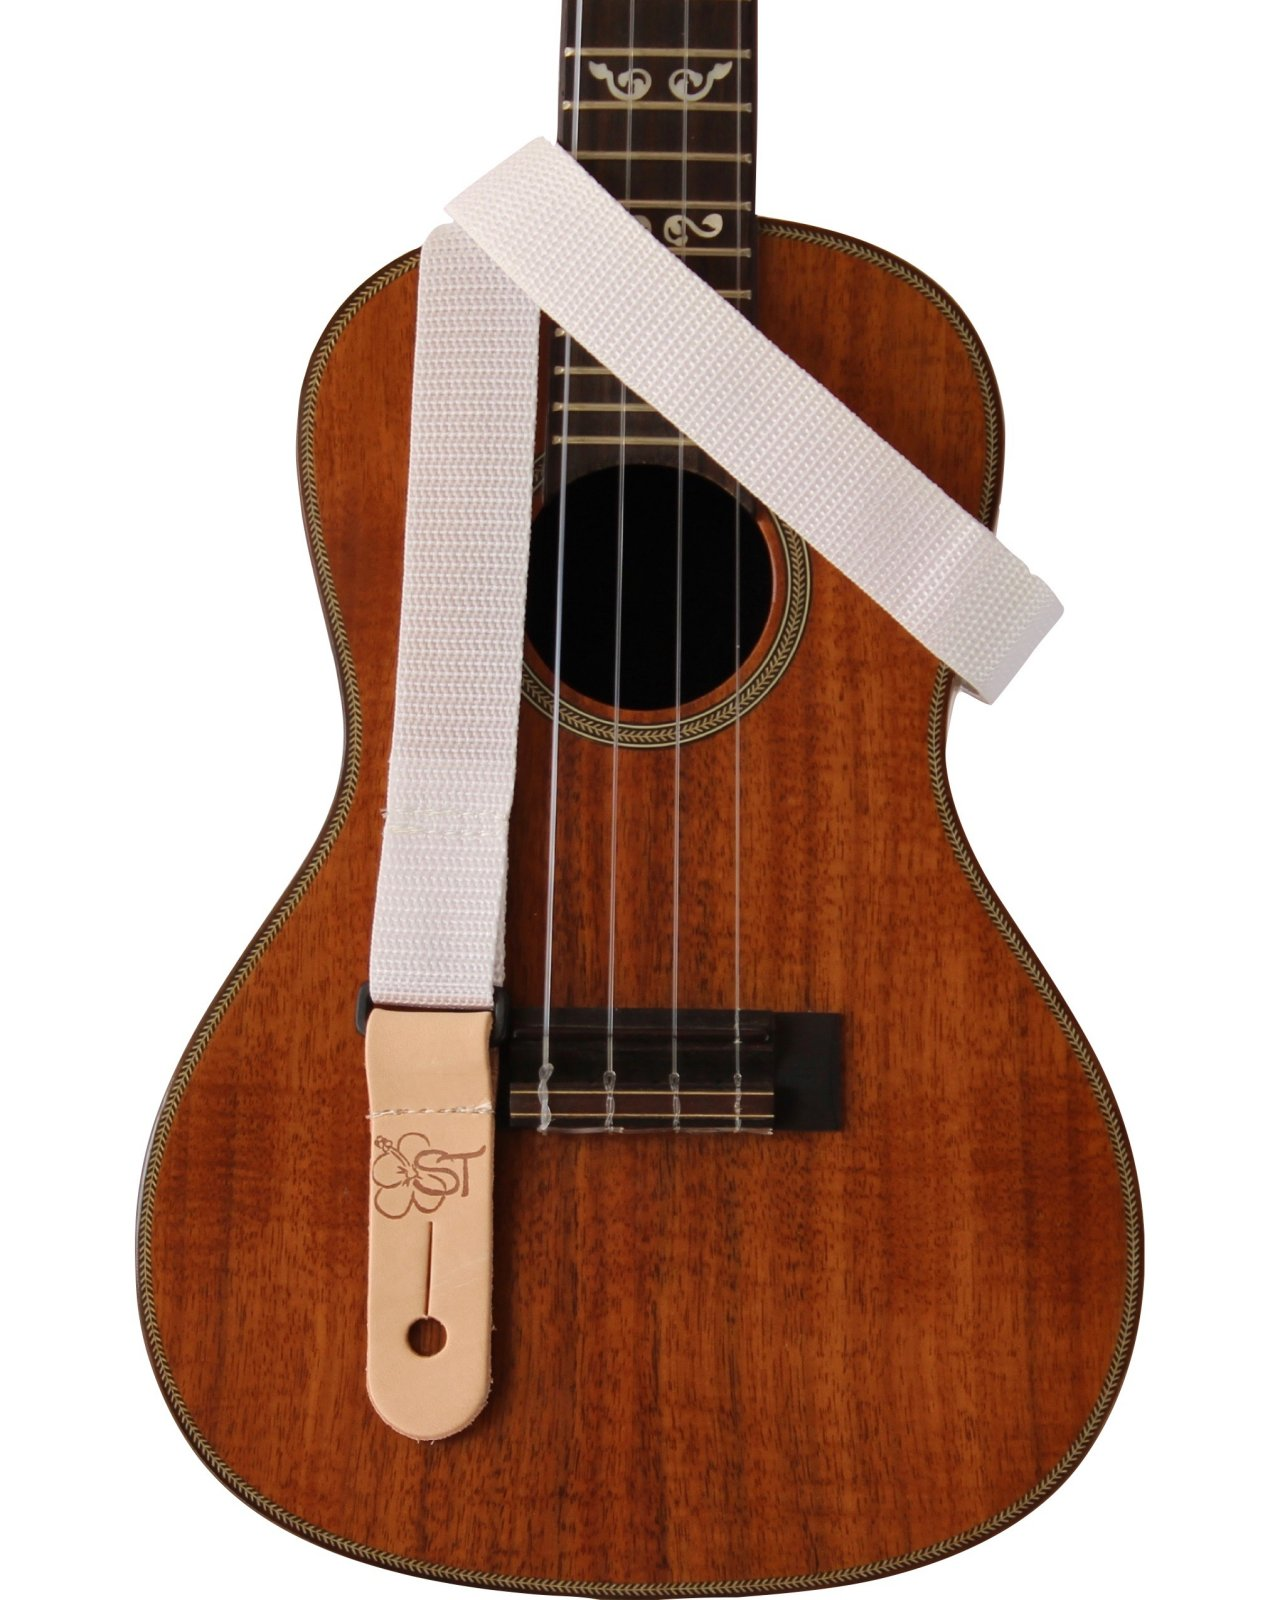 Sherrin's Threads 1 White Ukulele Strap